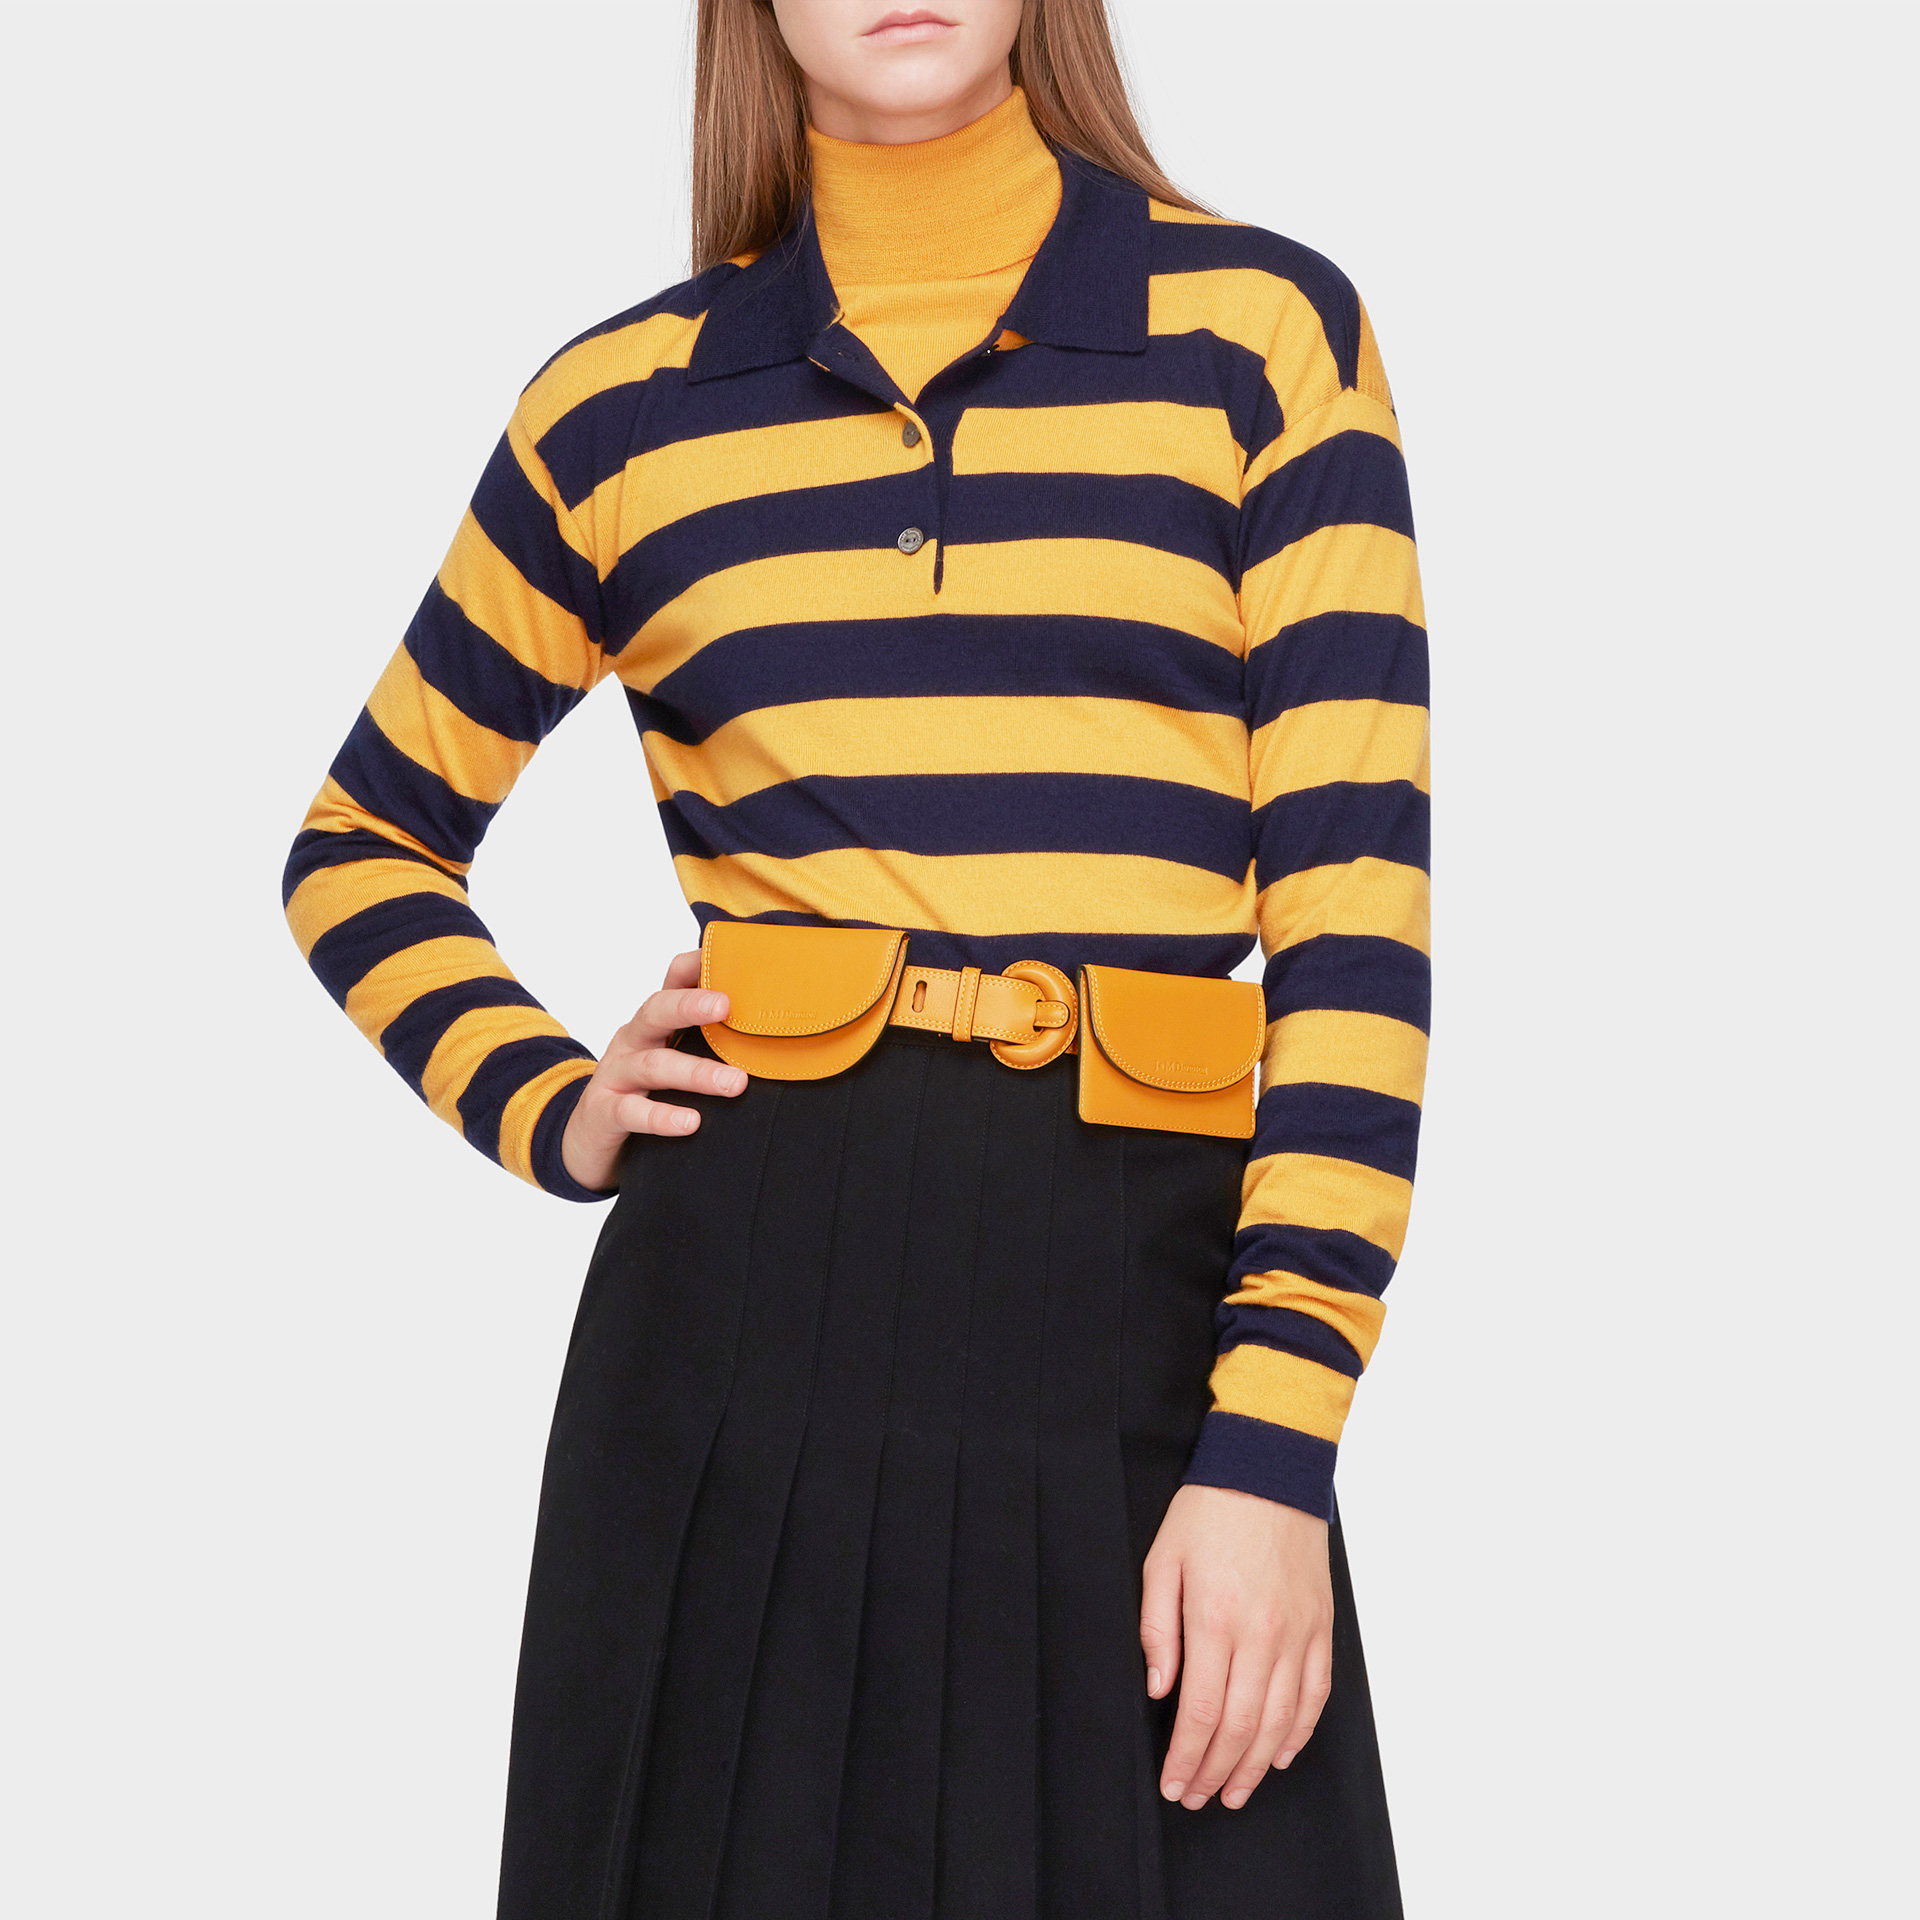 womenswear model wearing a yellow and black striped top with black skirt and light brown leather J&M belt with small compartments